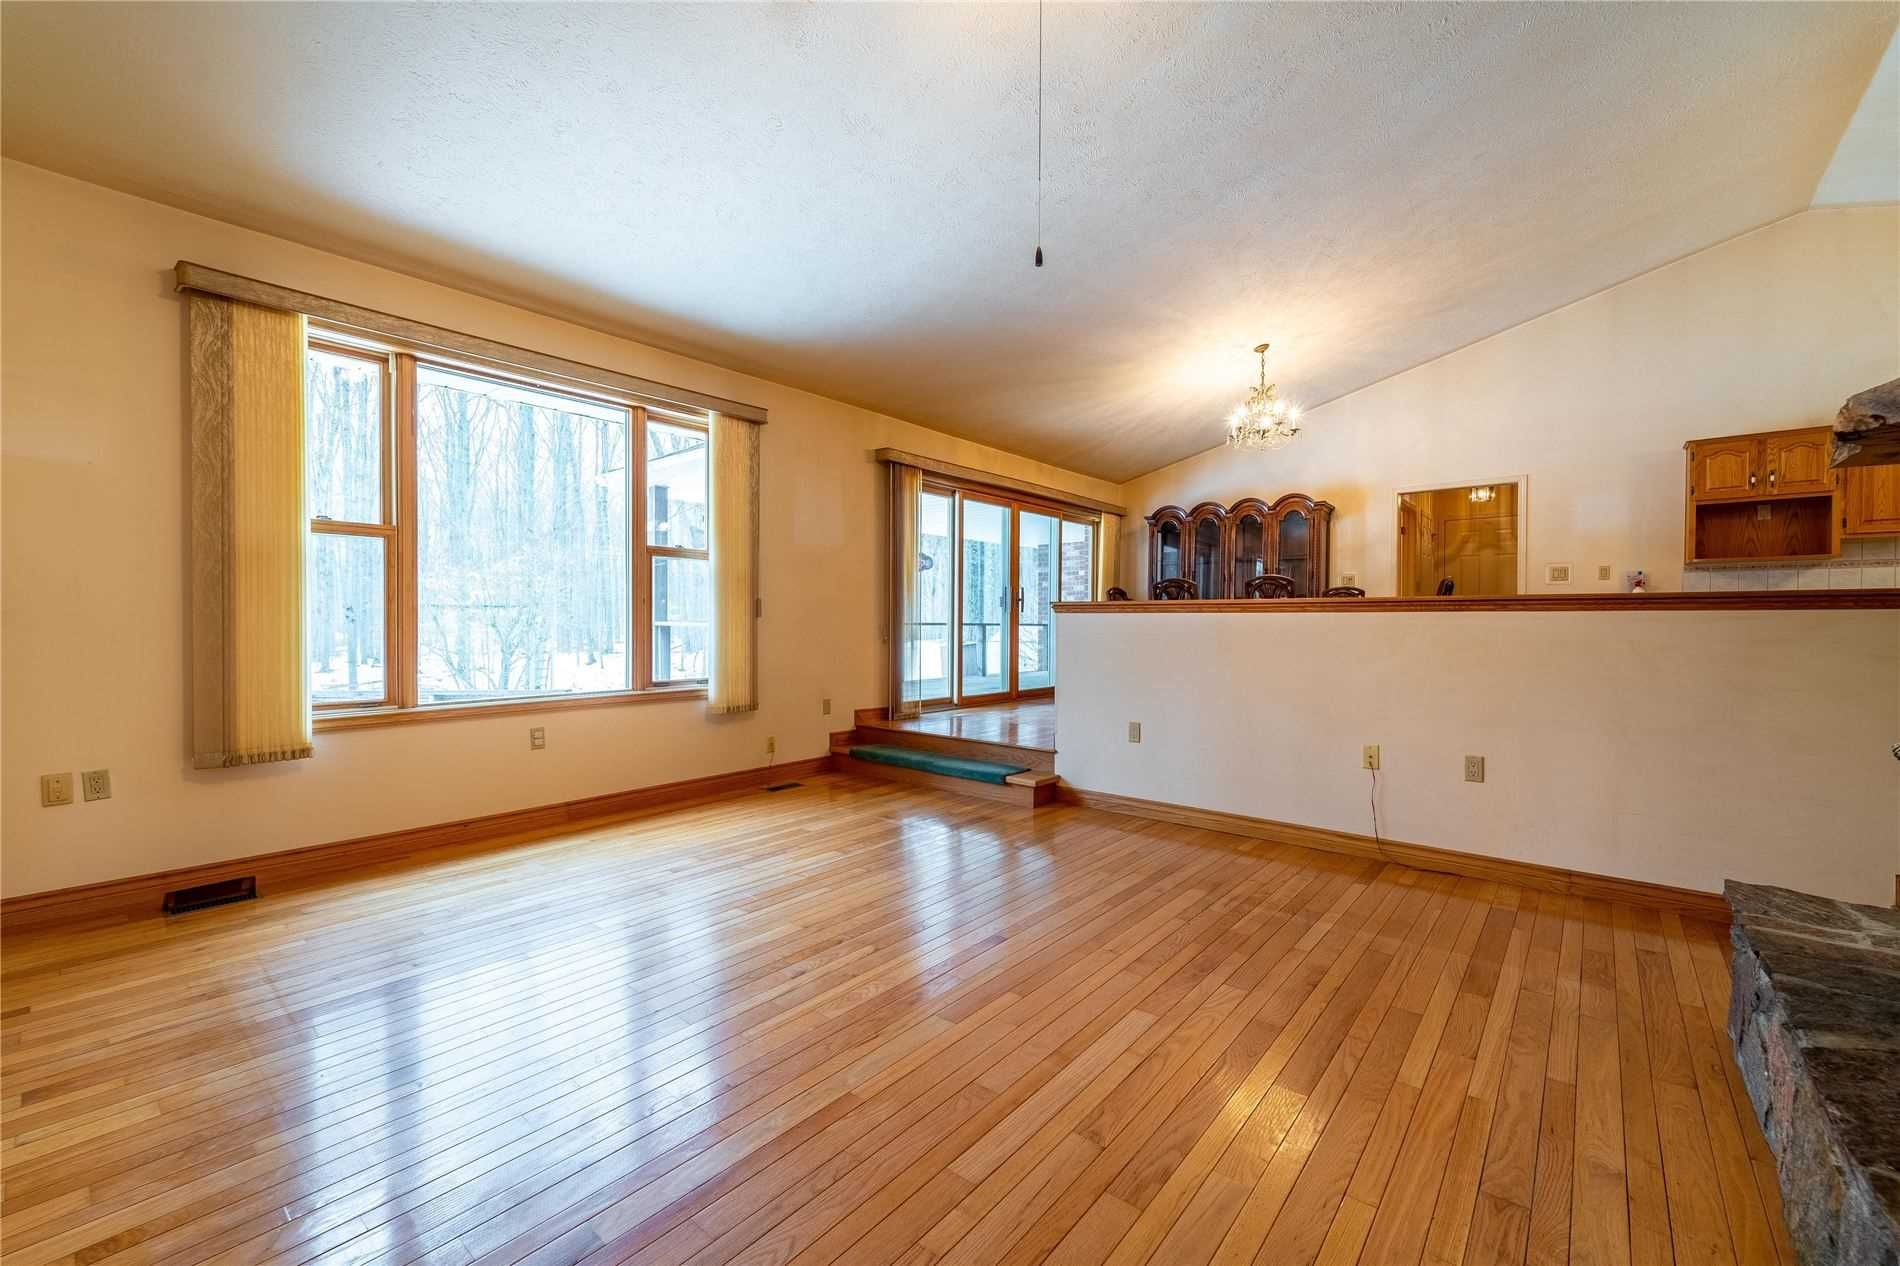 Photo 7: Photos: 918 Windham12 Road in Norfolk: Simcoe House (Bungalow) for sale : MLS®# X4707719